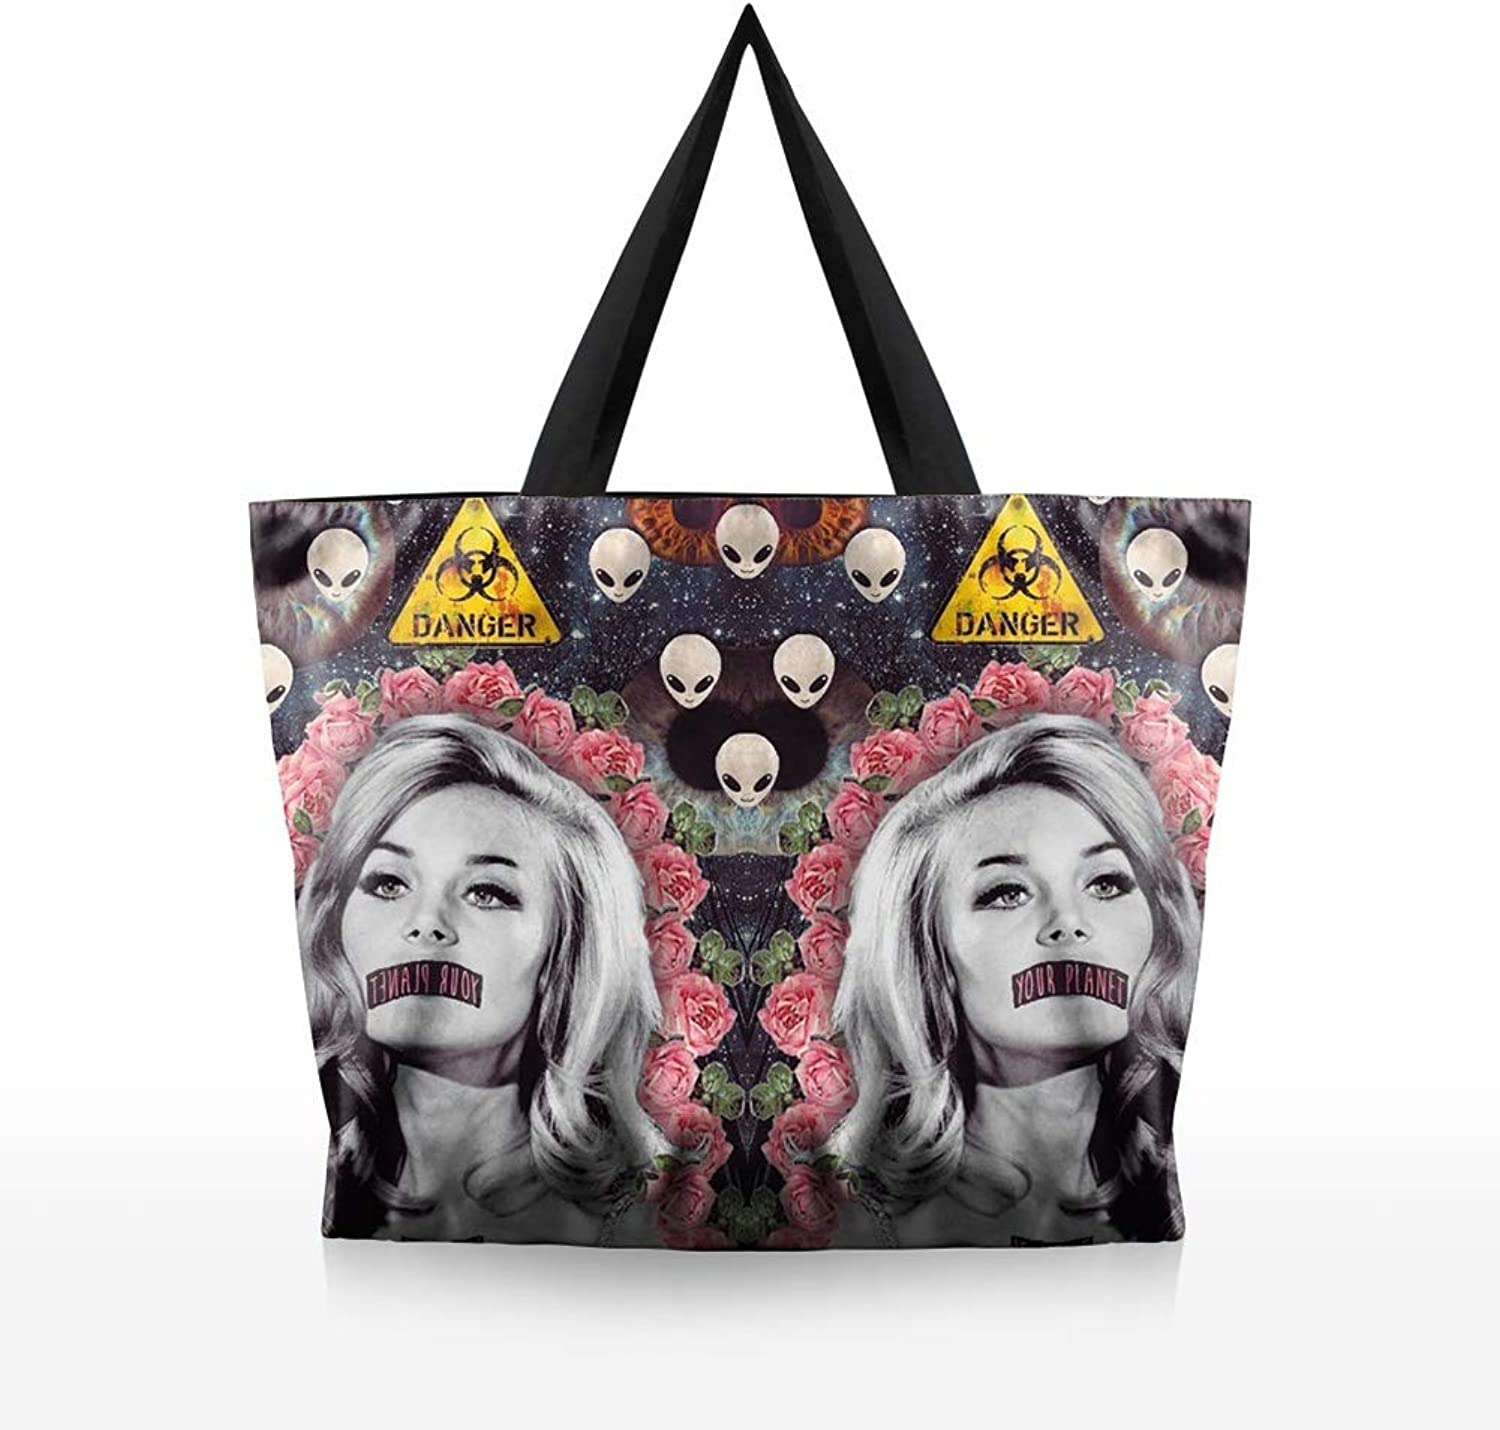 Womens Hobos and Shoulder Bags Girls Bookbag Tote Bag, Reusable Shopping Bags  EcoFriendly Foldable Grocery Bags for Shopping Organizing for Youth (color   Picture color, Size   34cm9cm33cm)